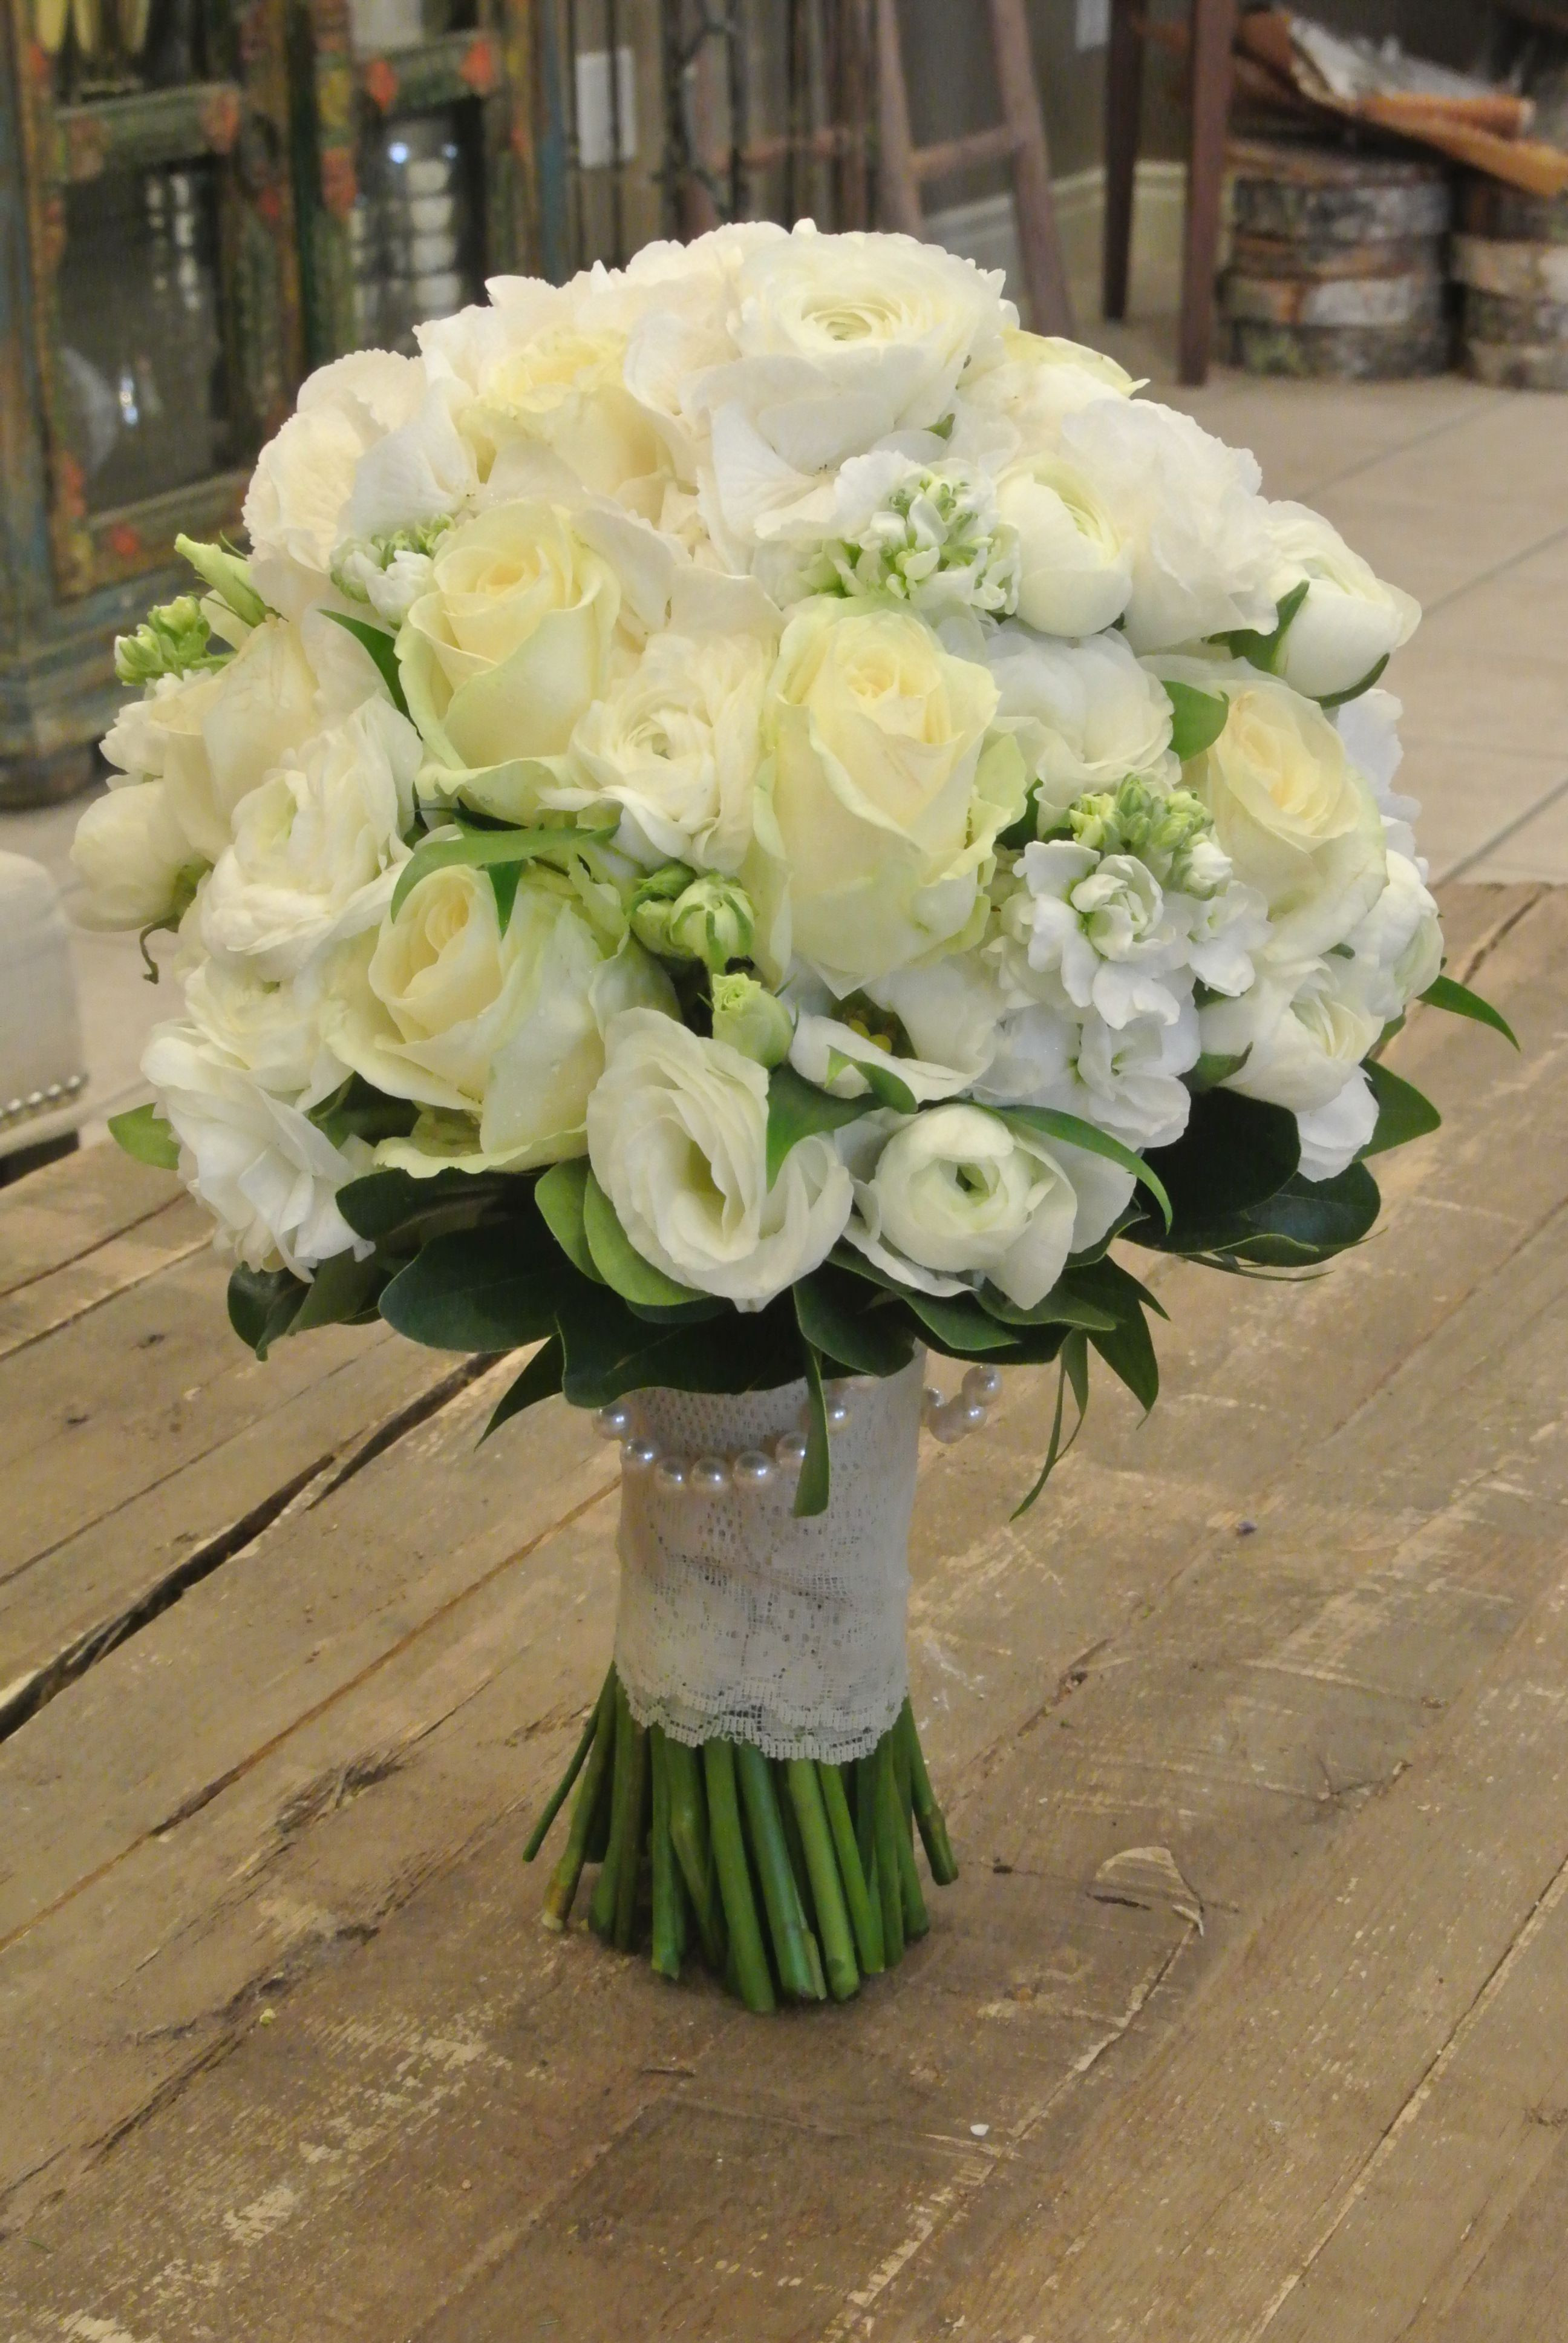 Florist Tribeca Nyc Inspirational Bridal Bouquet with Roses Ranunculus Lisianthus Stocks and